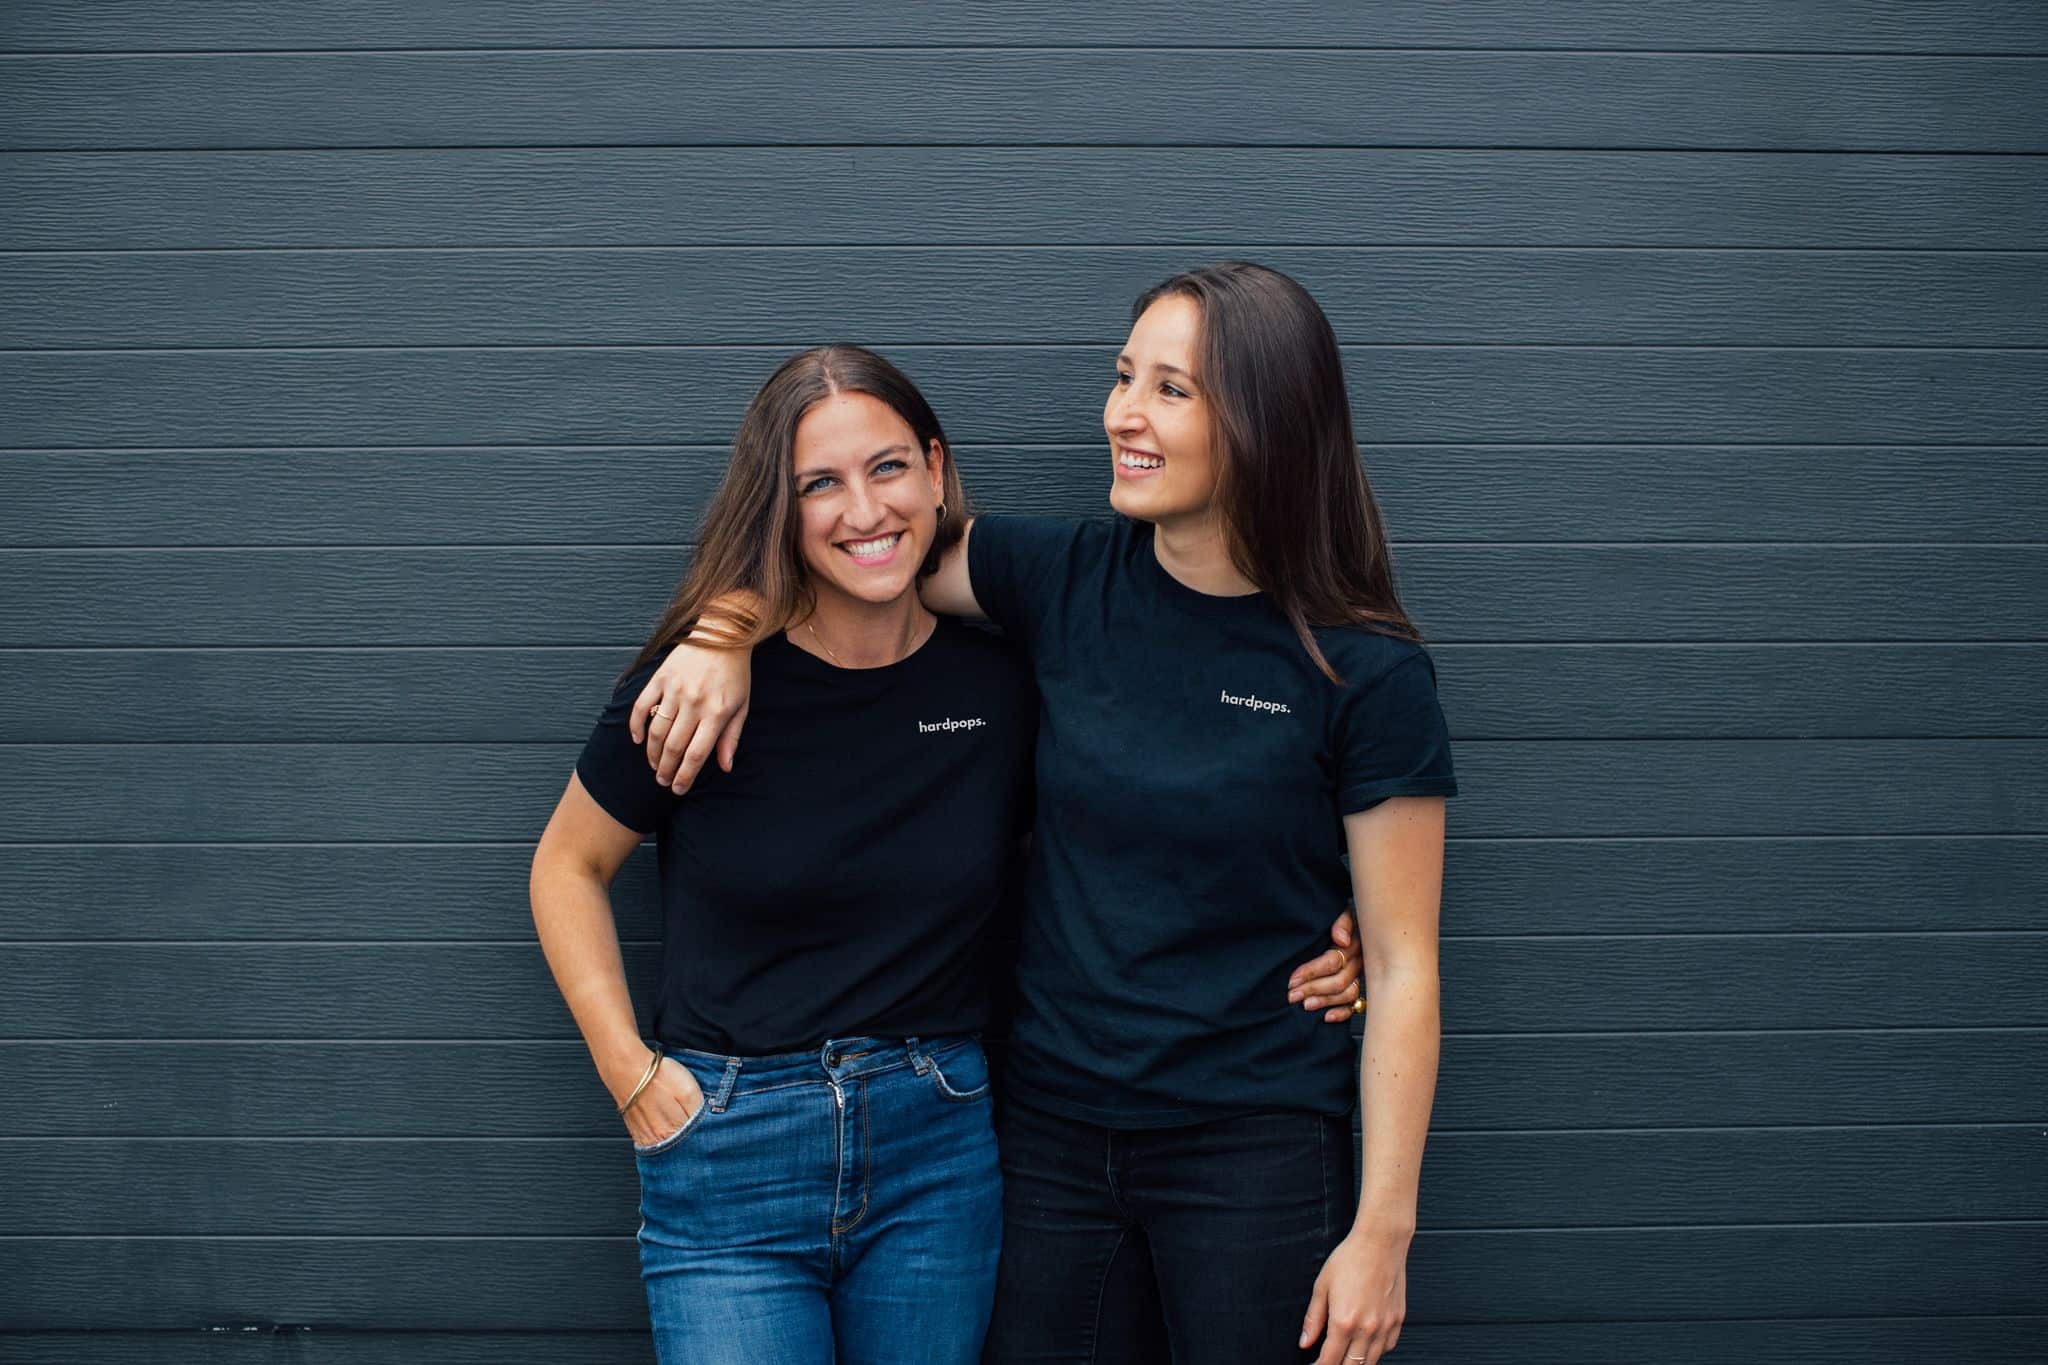 Why the B.C. founders of Hardpops are being forced to move their business to the U.S.